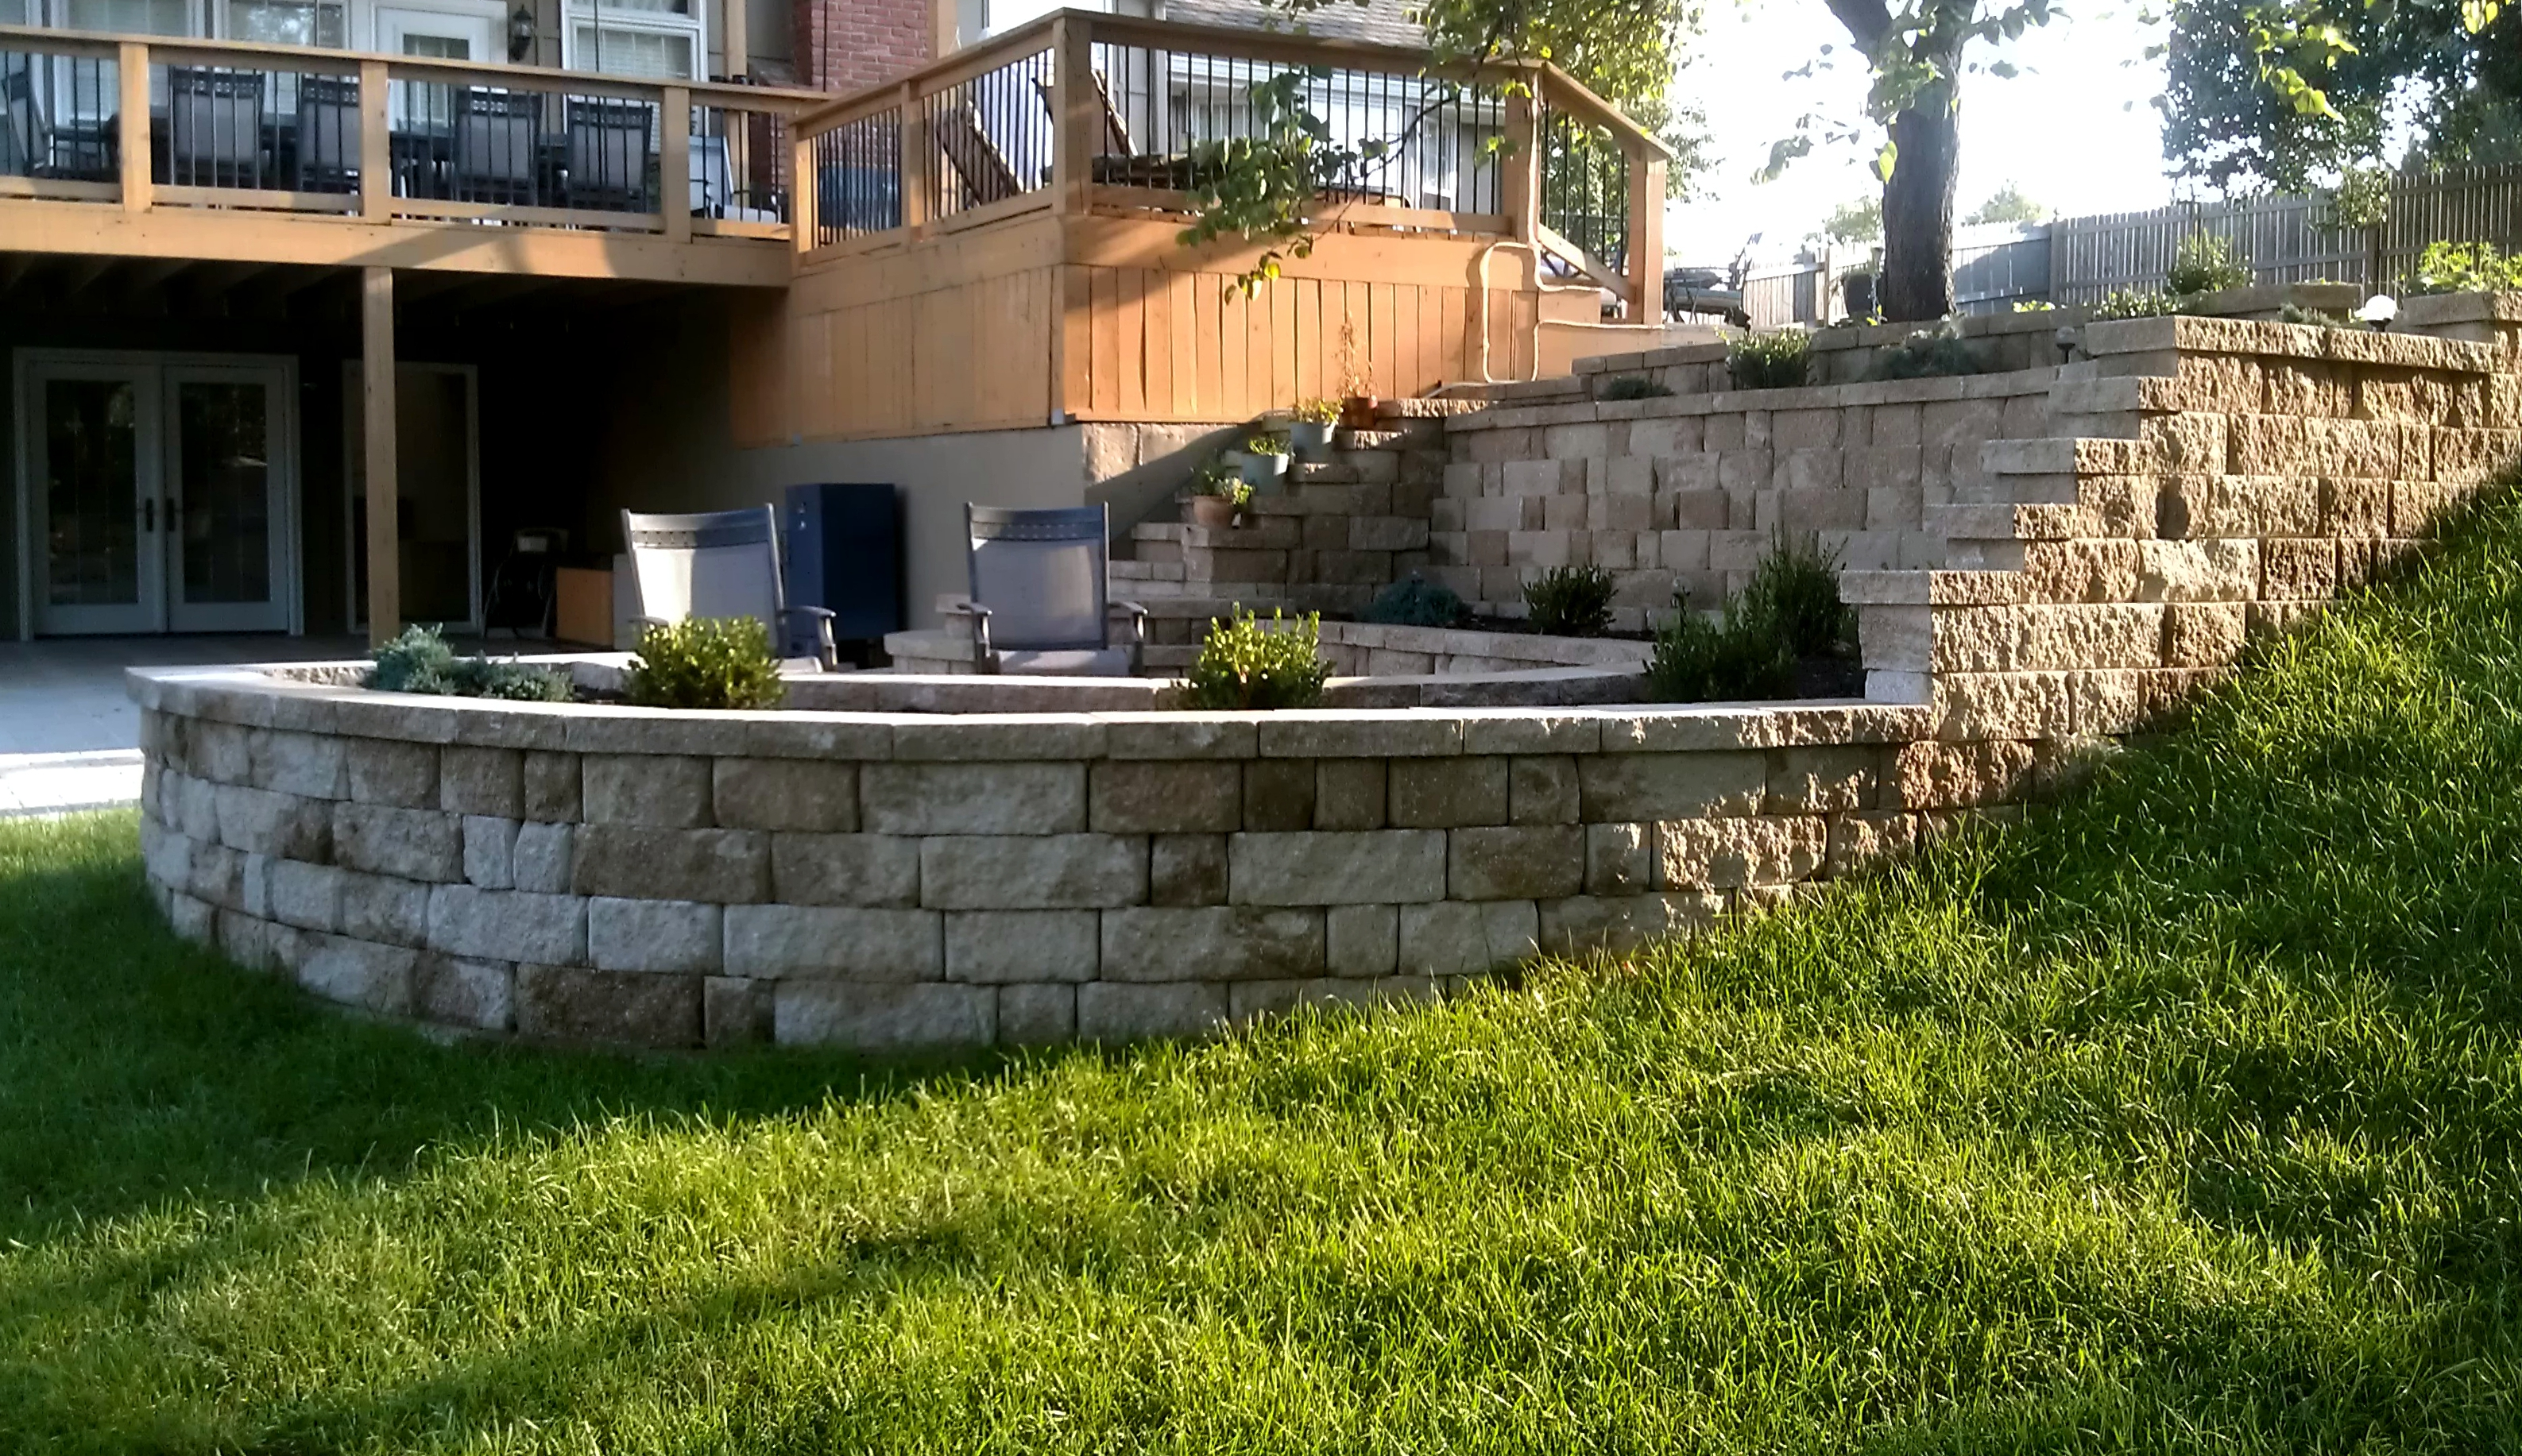 #6 view at north end of wall / patio